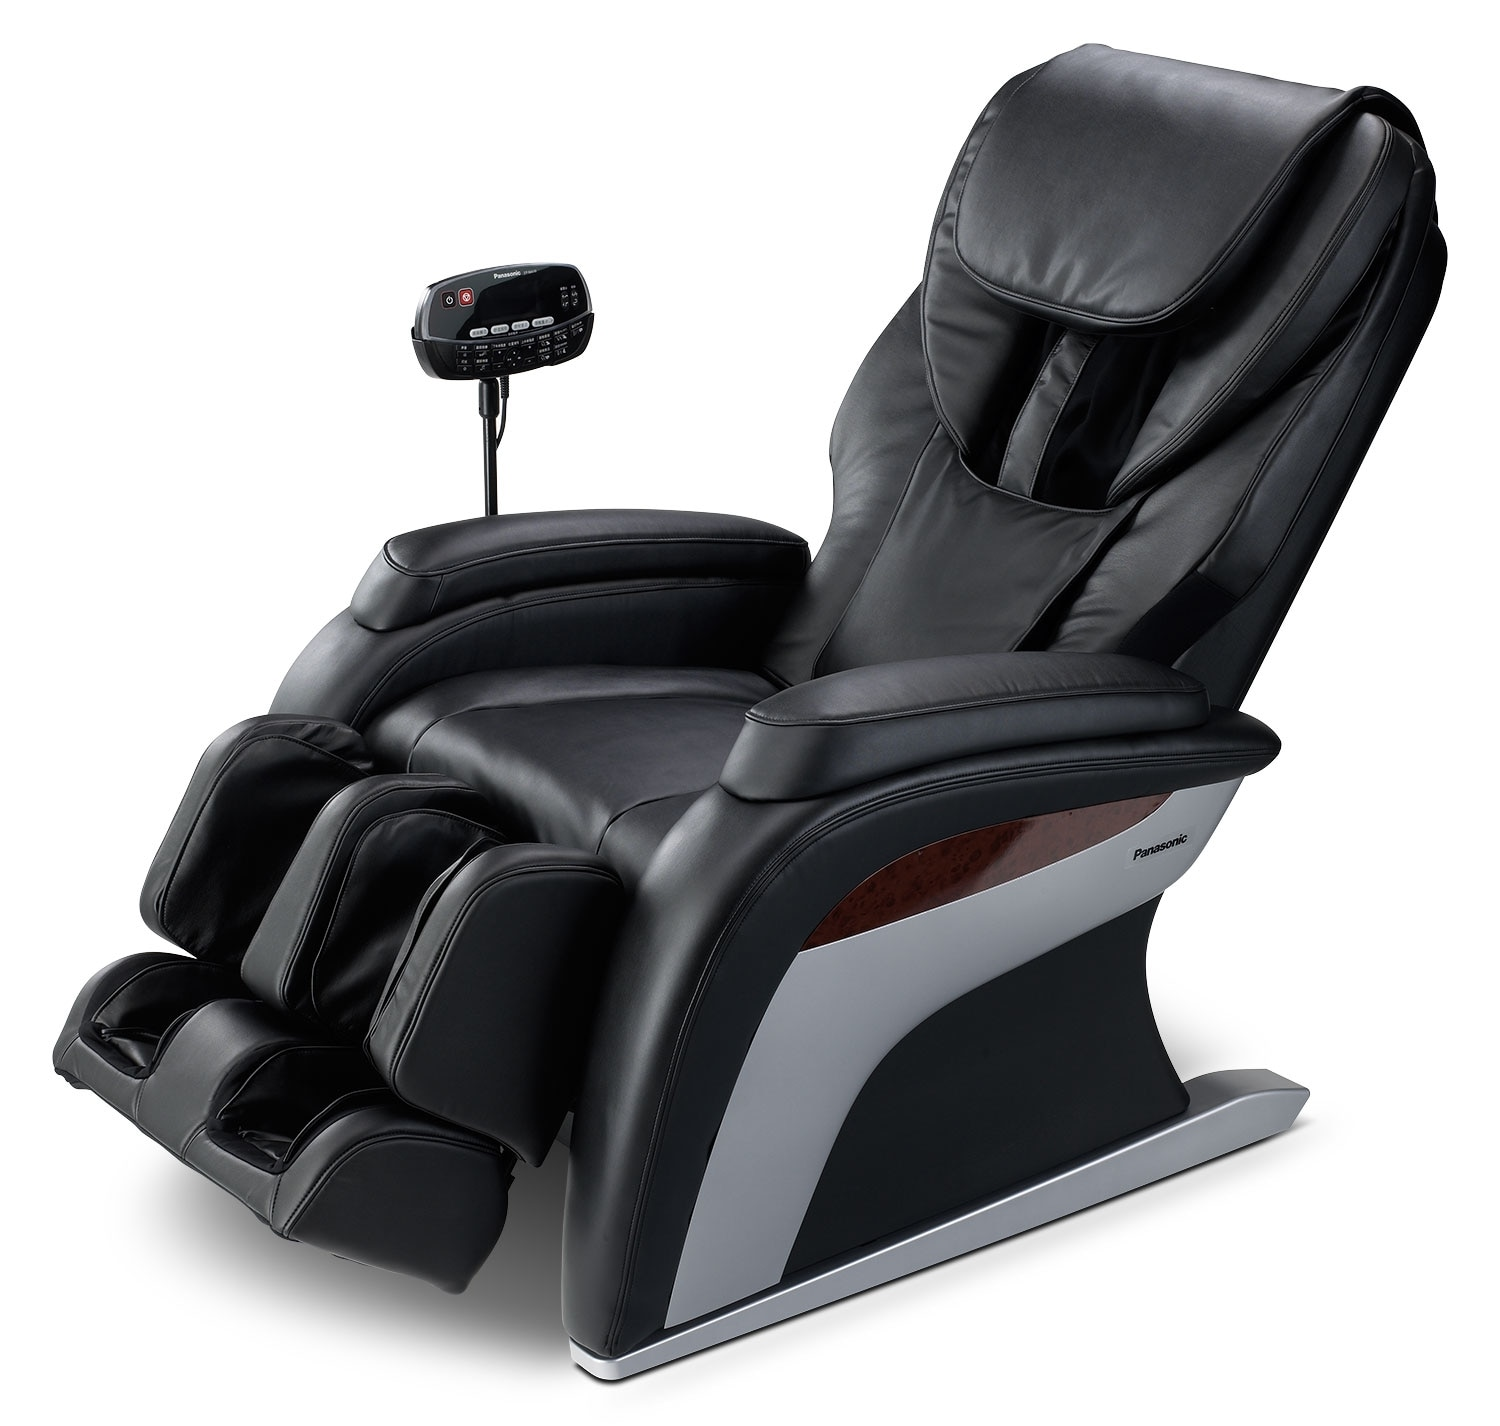 Living Room Furniture - Panasonic Urban Collection Reclining Massage Chair - Black